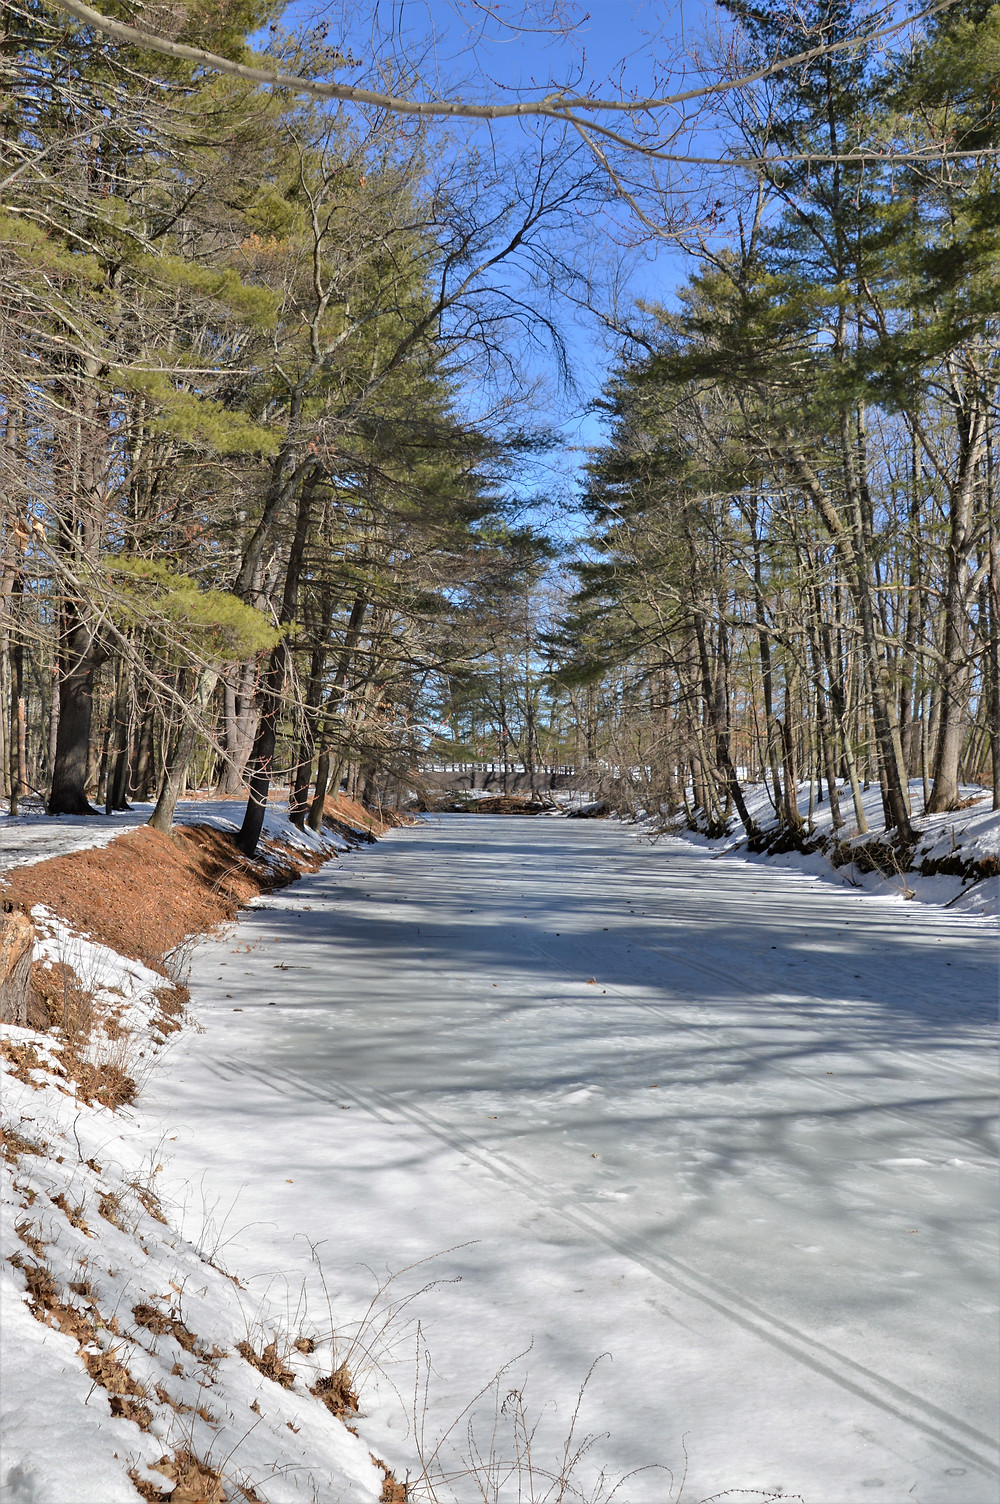 Nashua Manufacturing Co. canal flowing through Mine Falls Park in Nashua NH